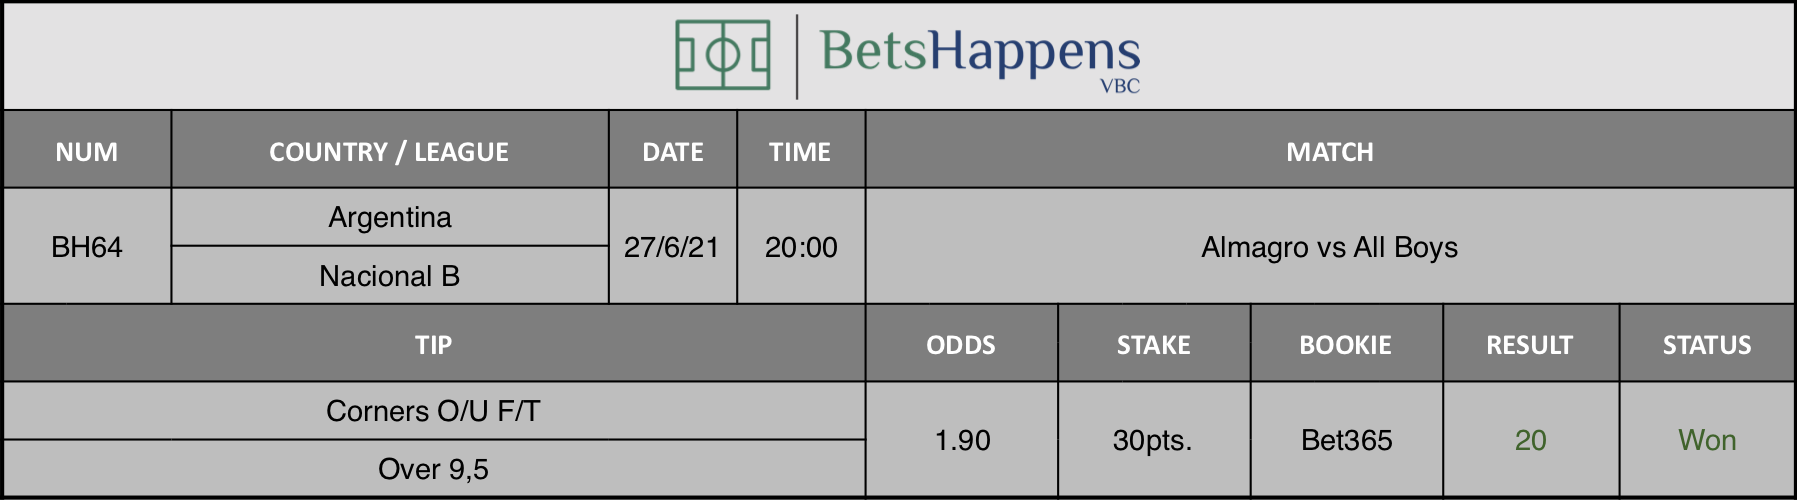 Results of our tip for the Almagro vs All Boys match Corners O/U F/T Over 9,5 is recommended.